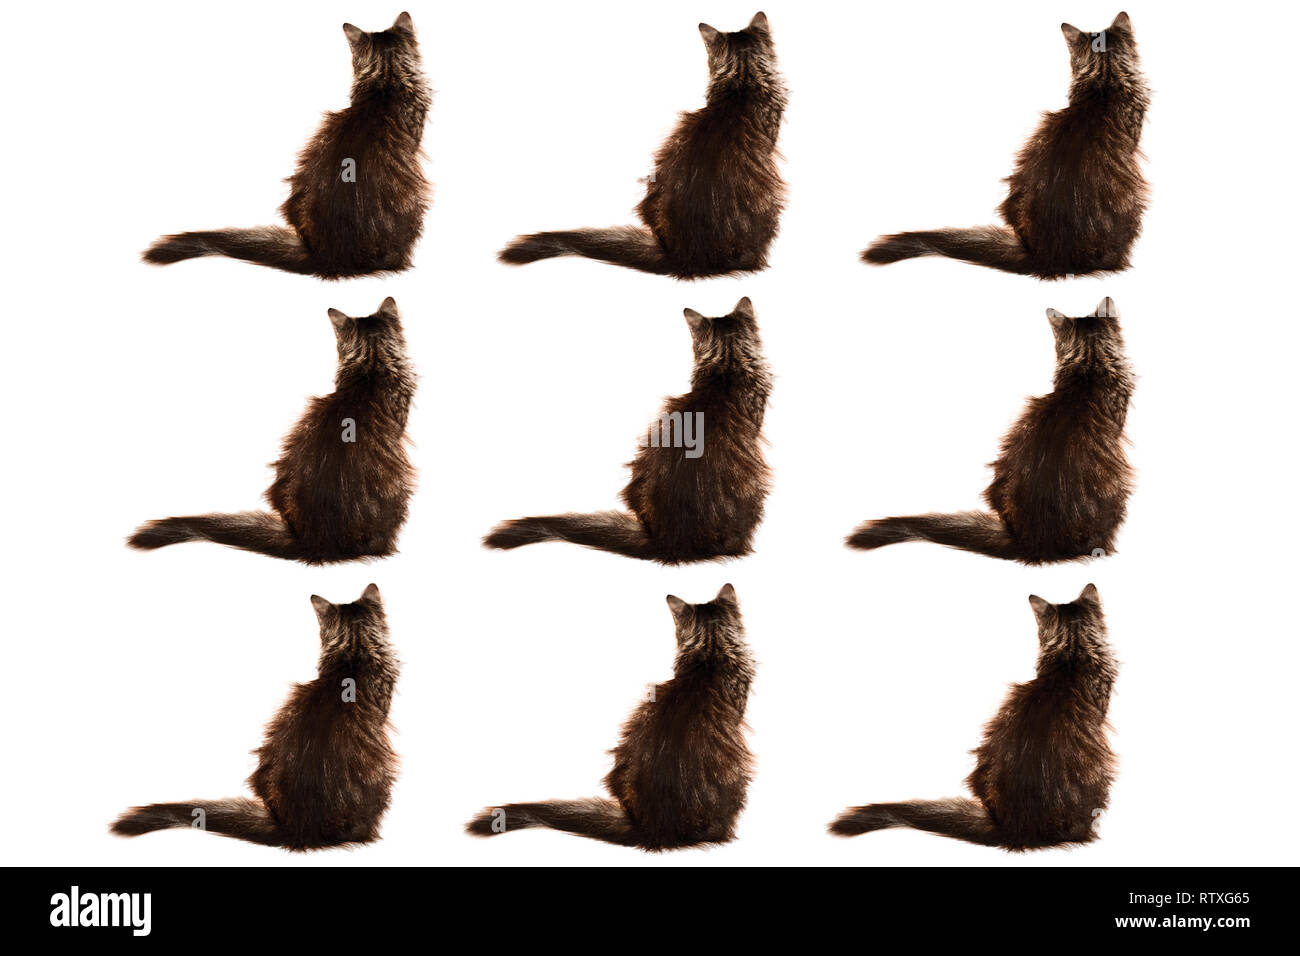 nine sitting cats isolated, concept for the nine lives of cats - Stock Image